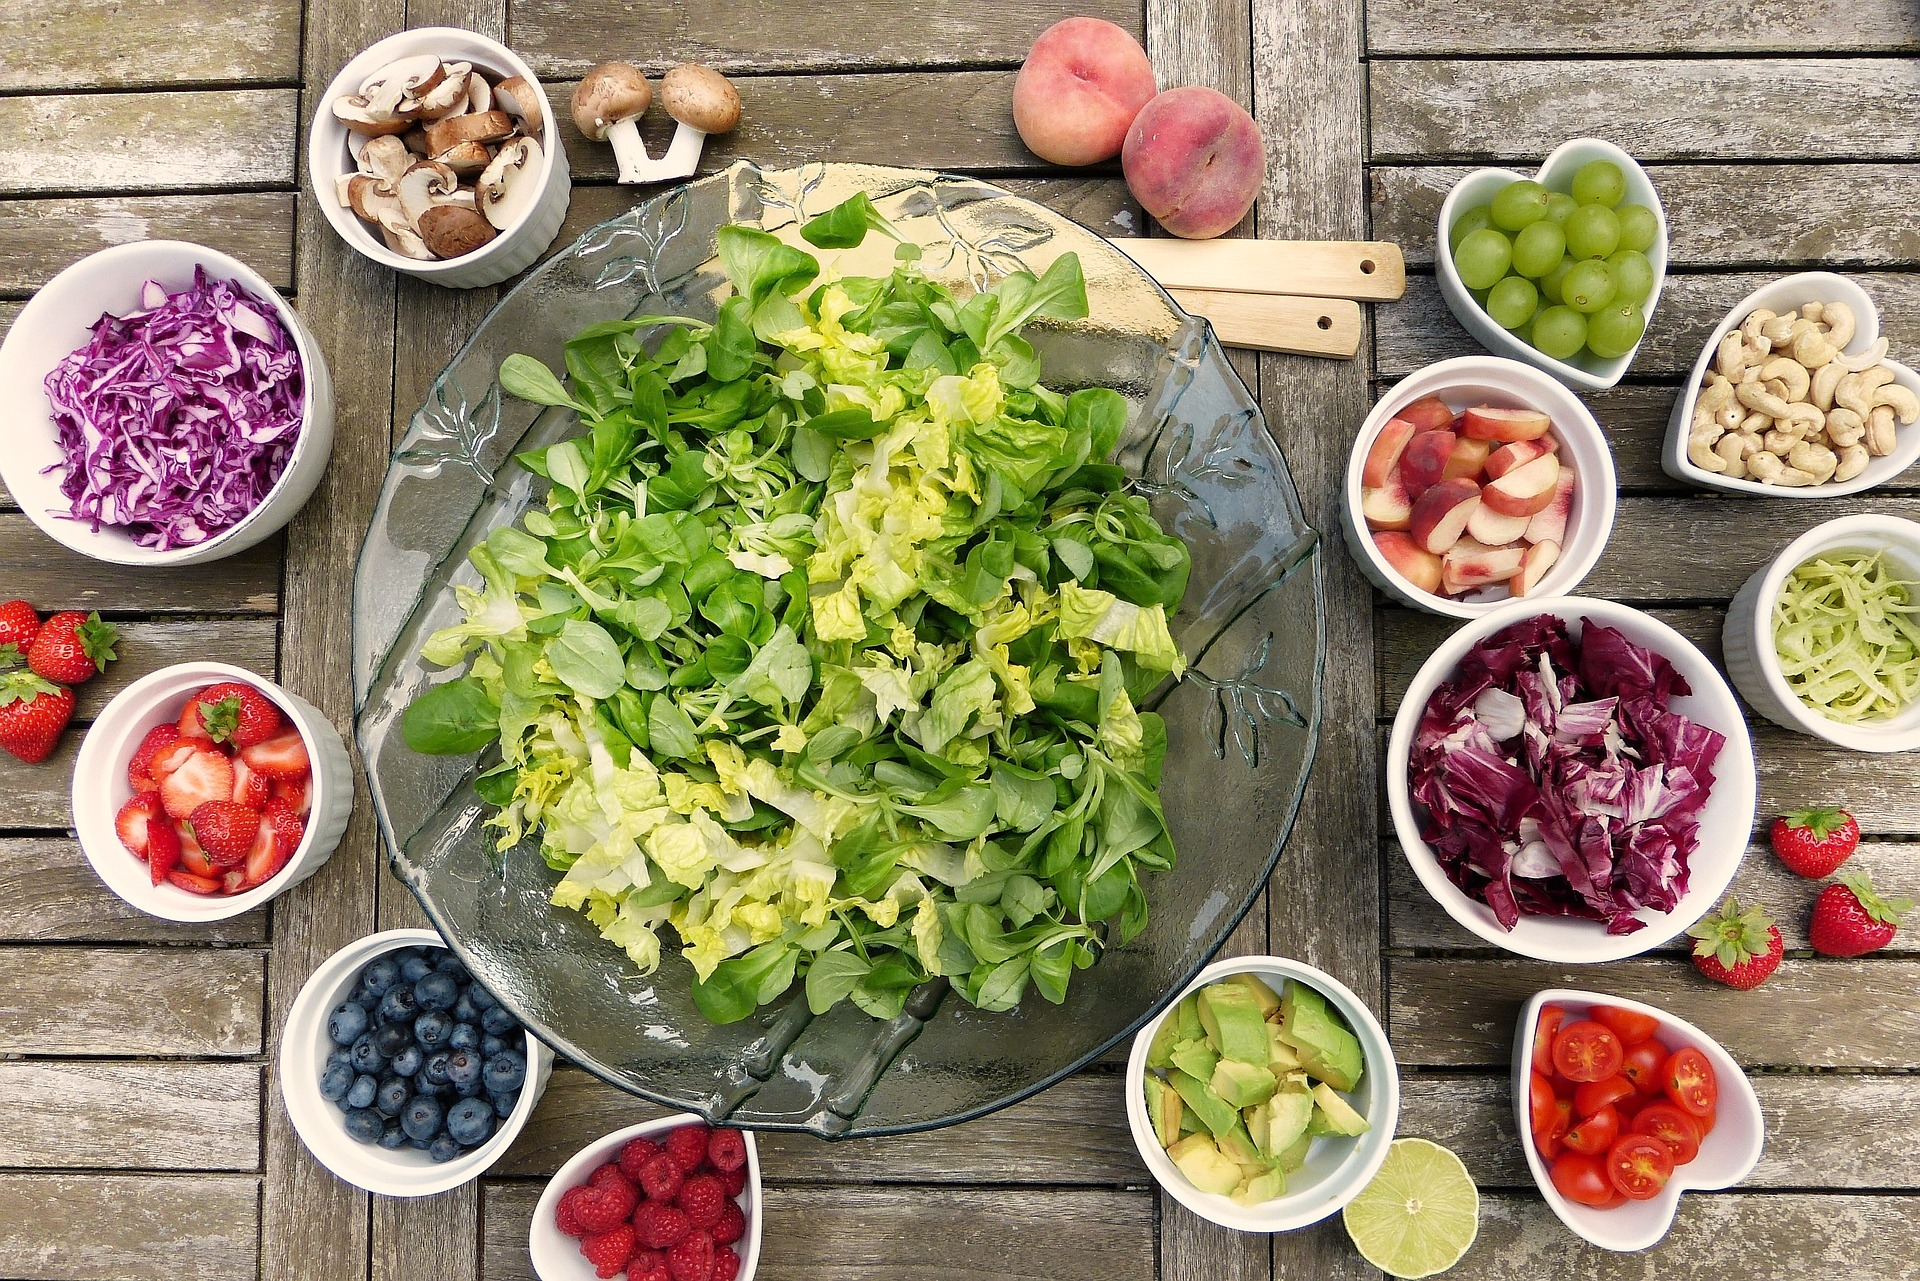 Cheapest Healthiest Foods Foods To Eat Everyday Healthy Daily Diet